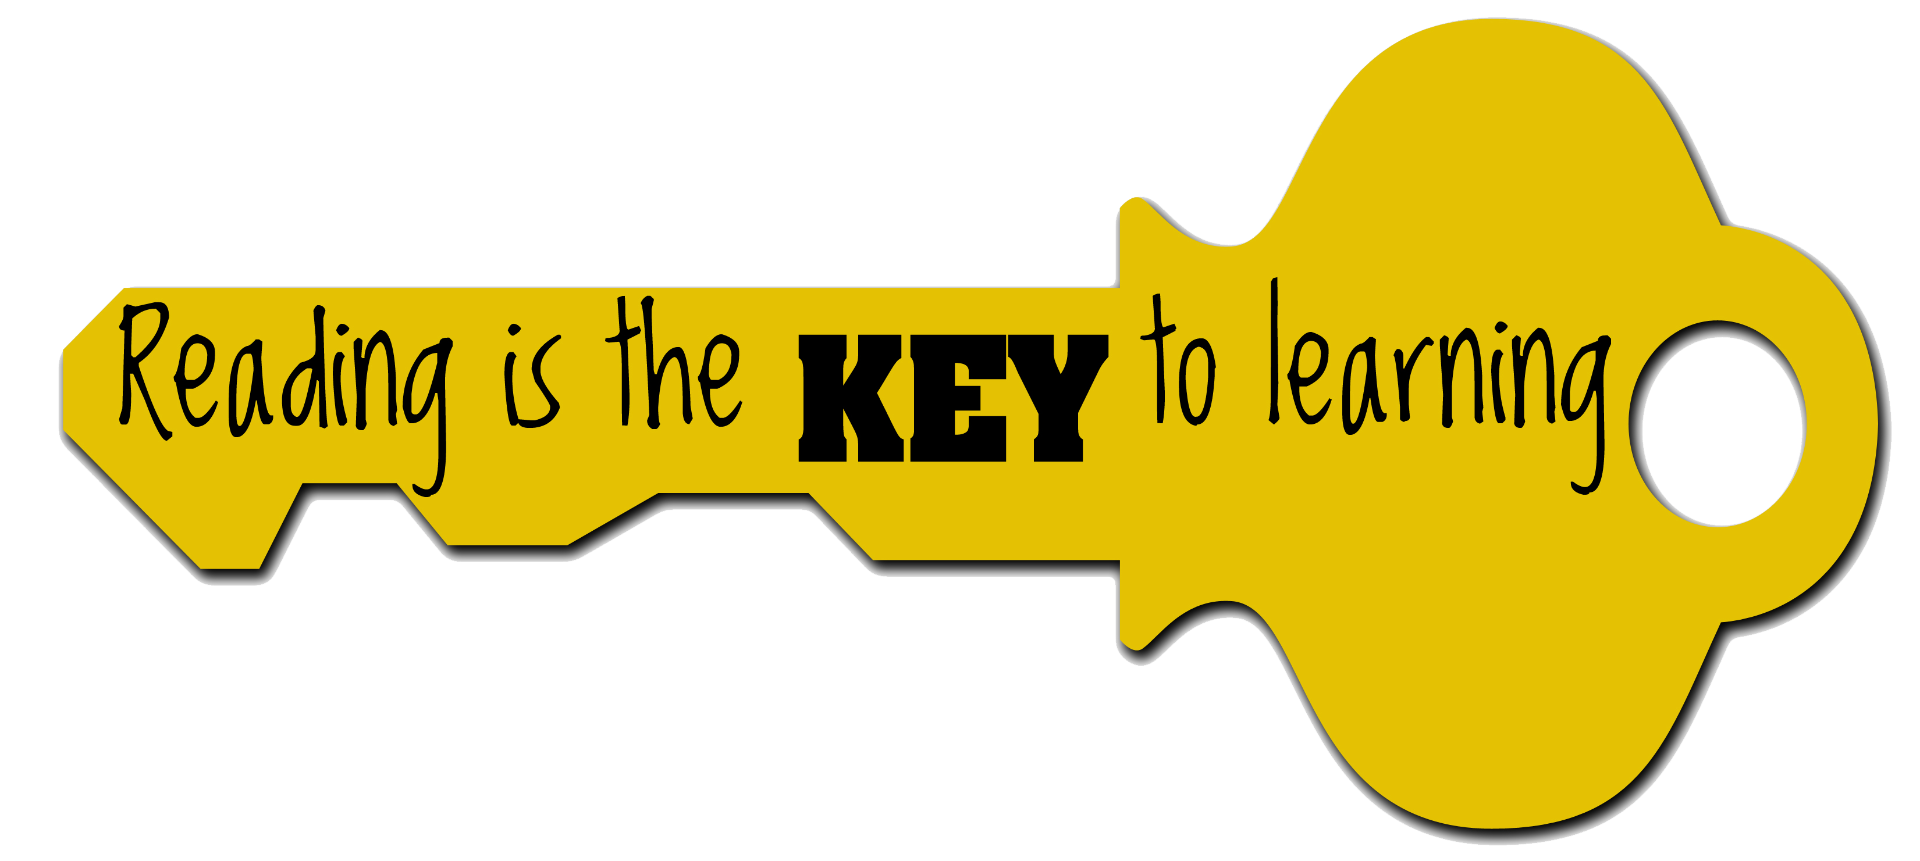 Reading-is-the-Key-Flyer-Banner